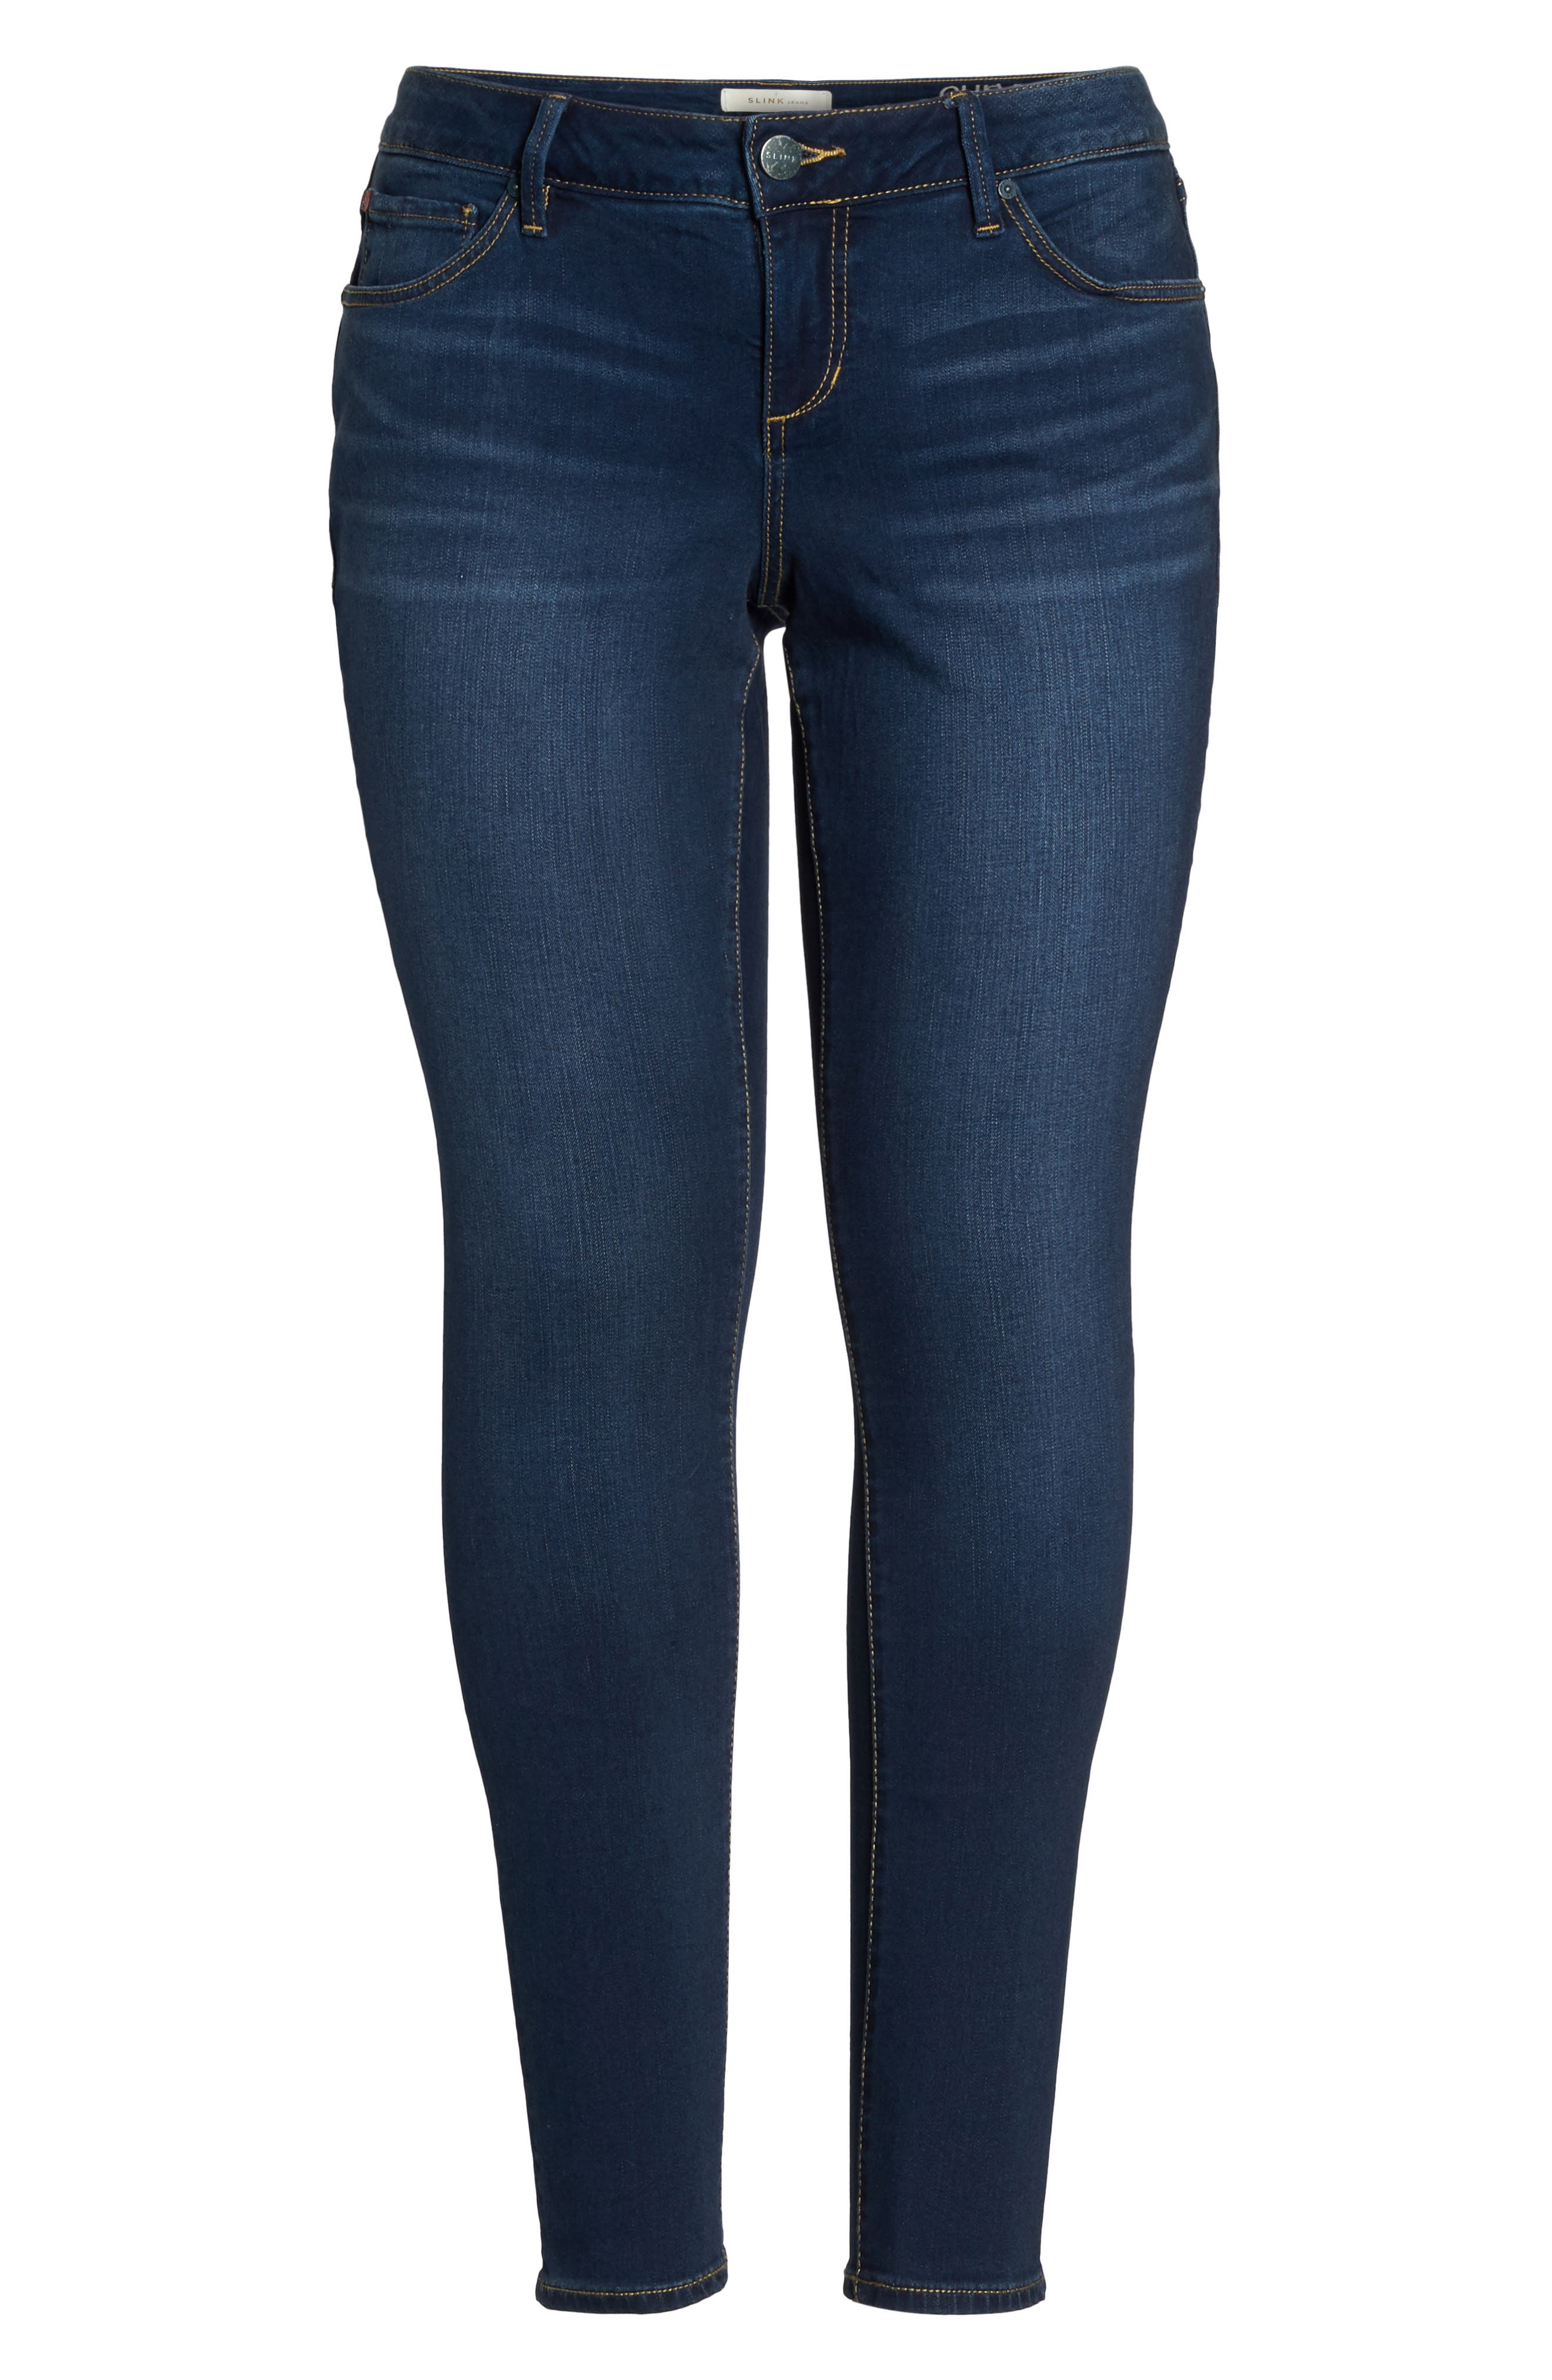 'The Skinny' Stretch Denim Jeans,                             Alternate thumbnail 4, color,                             AMBER